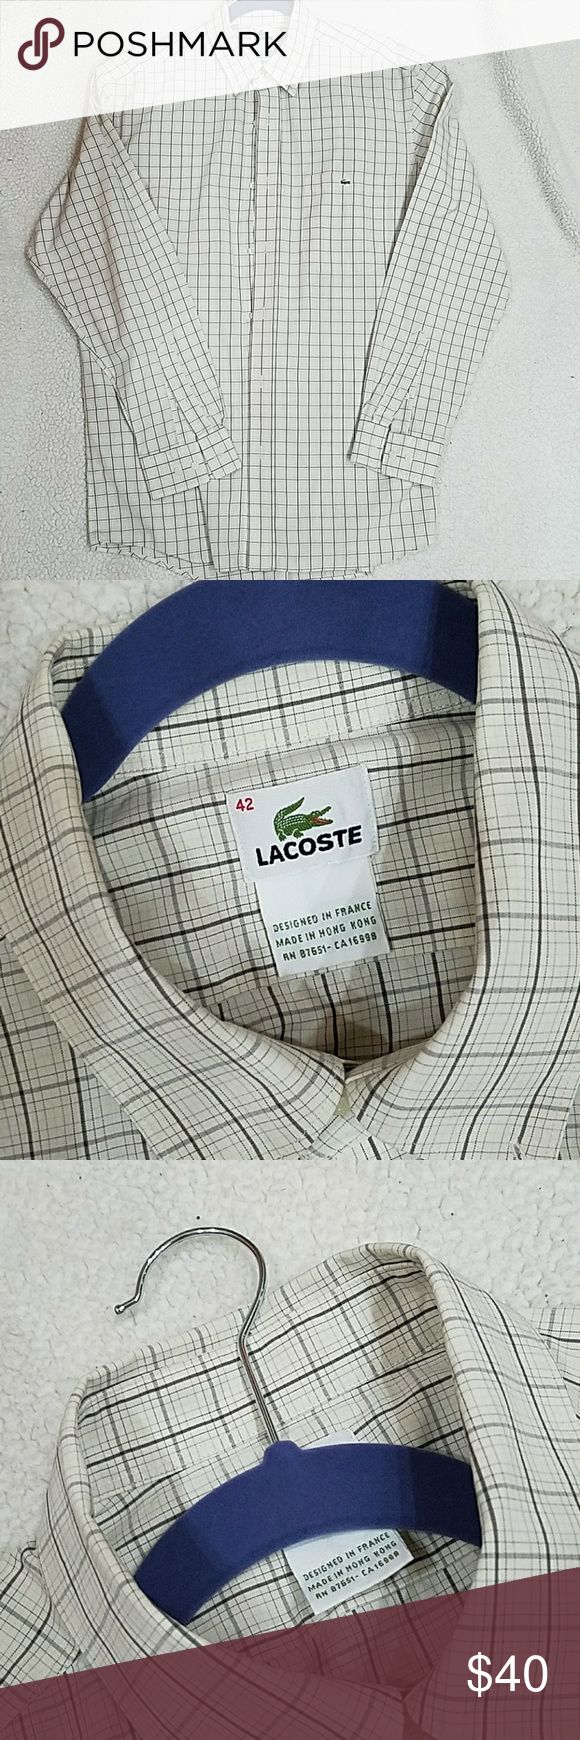 ☺SALE LACOSTE (like new) Men's Button Down Shirt AUTHENTIC Like New button down designer shirt. Beige with lighter and darker brown check pattern. Signature Lacoste buttons. Patch pocket with crocodile logo on left chest. IN EXCELLENT CONDITION. WORN ONLY ONCE.  Purchased at lacoste store. Size 42 which I believe  is about a Large. 100% high quality Cotton. Comes with 2 extra buttons attached on inside tag. Lacoste Shirts Casual Button Down Shirts